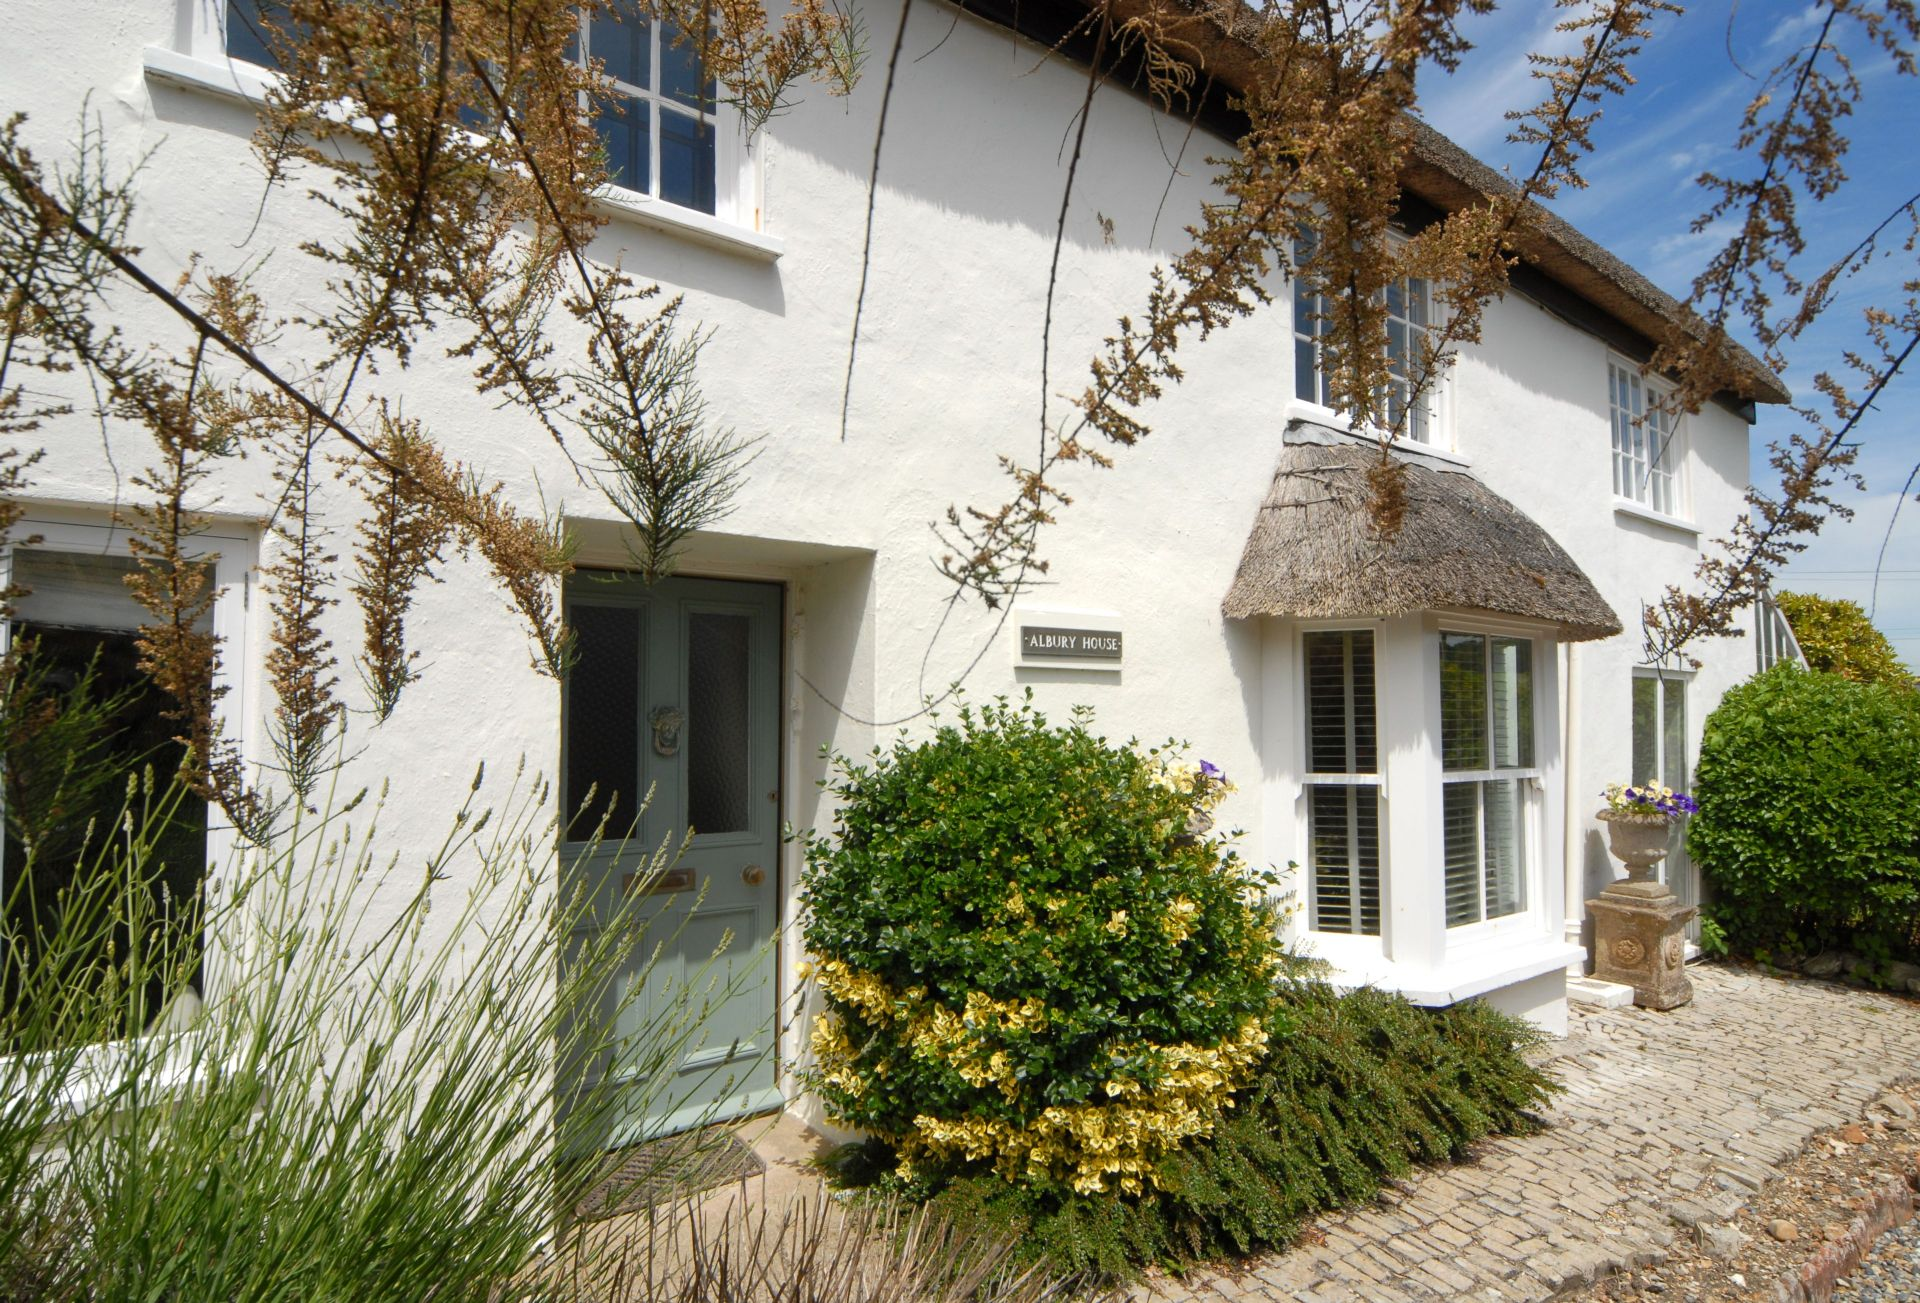 More information about Albury House - ideal for a family holiday